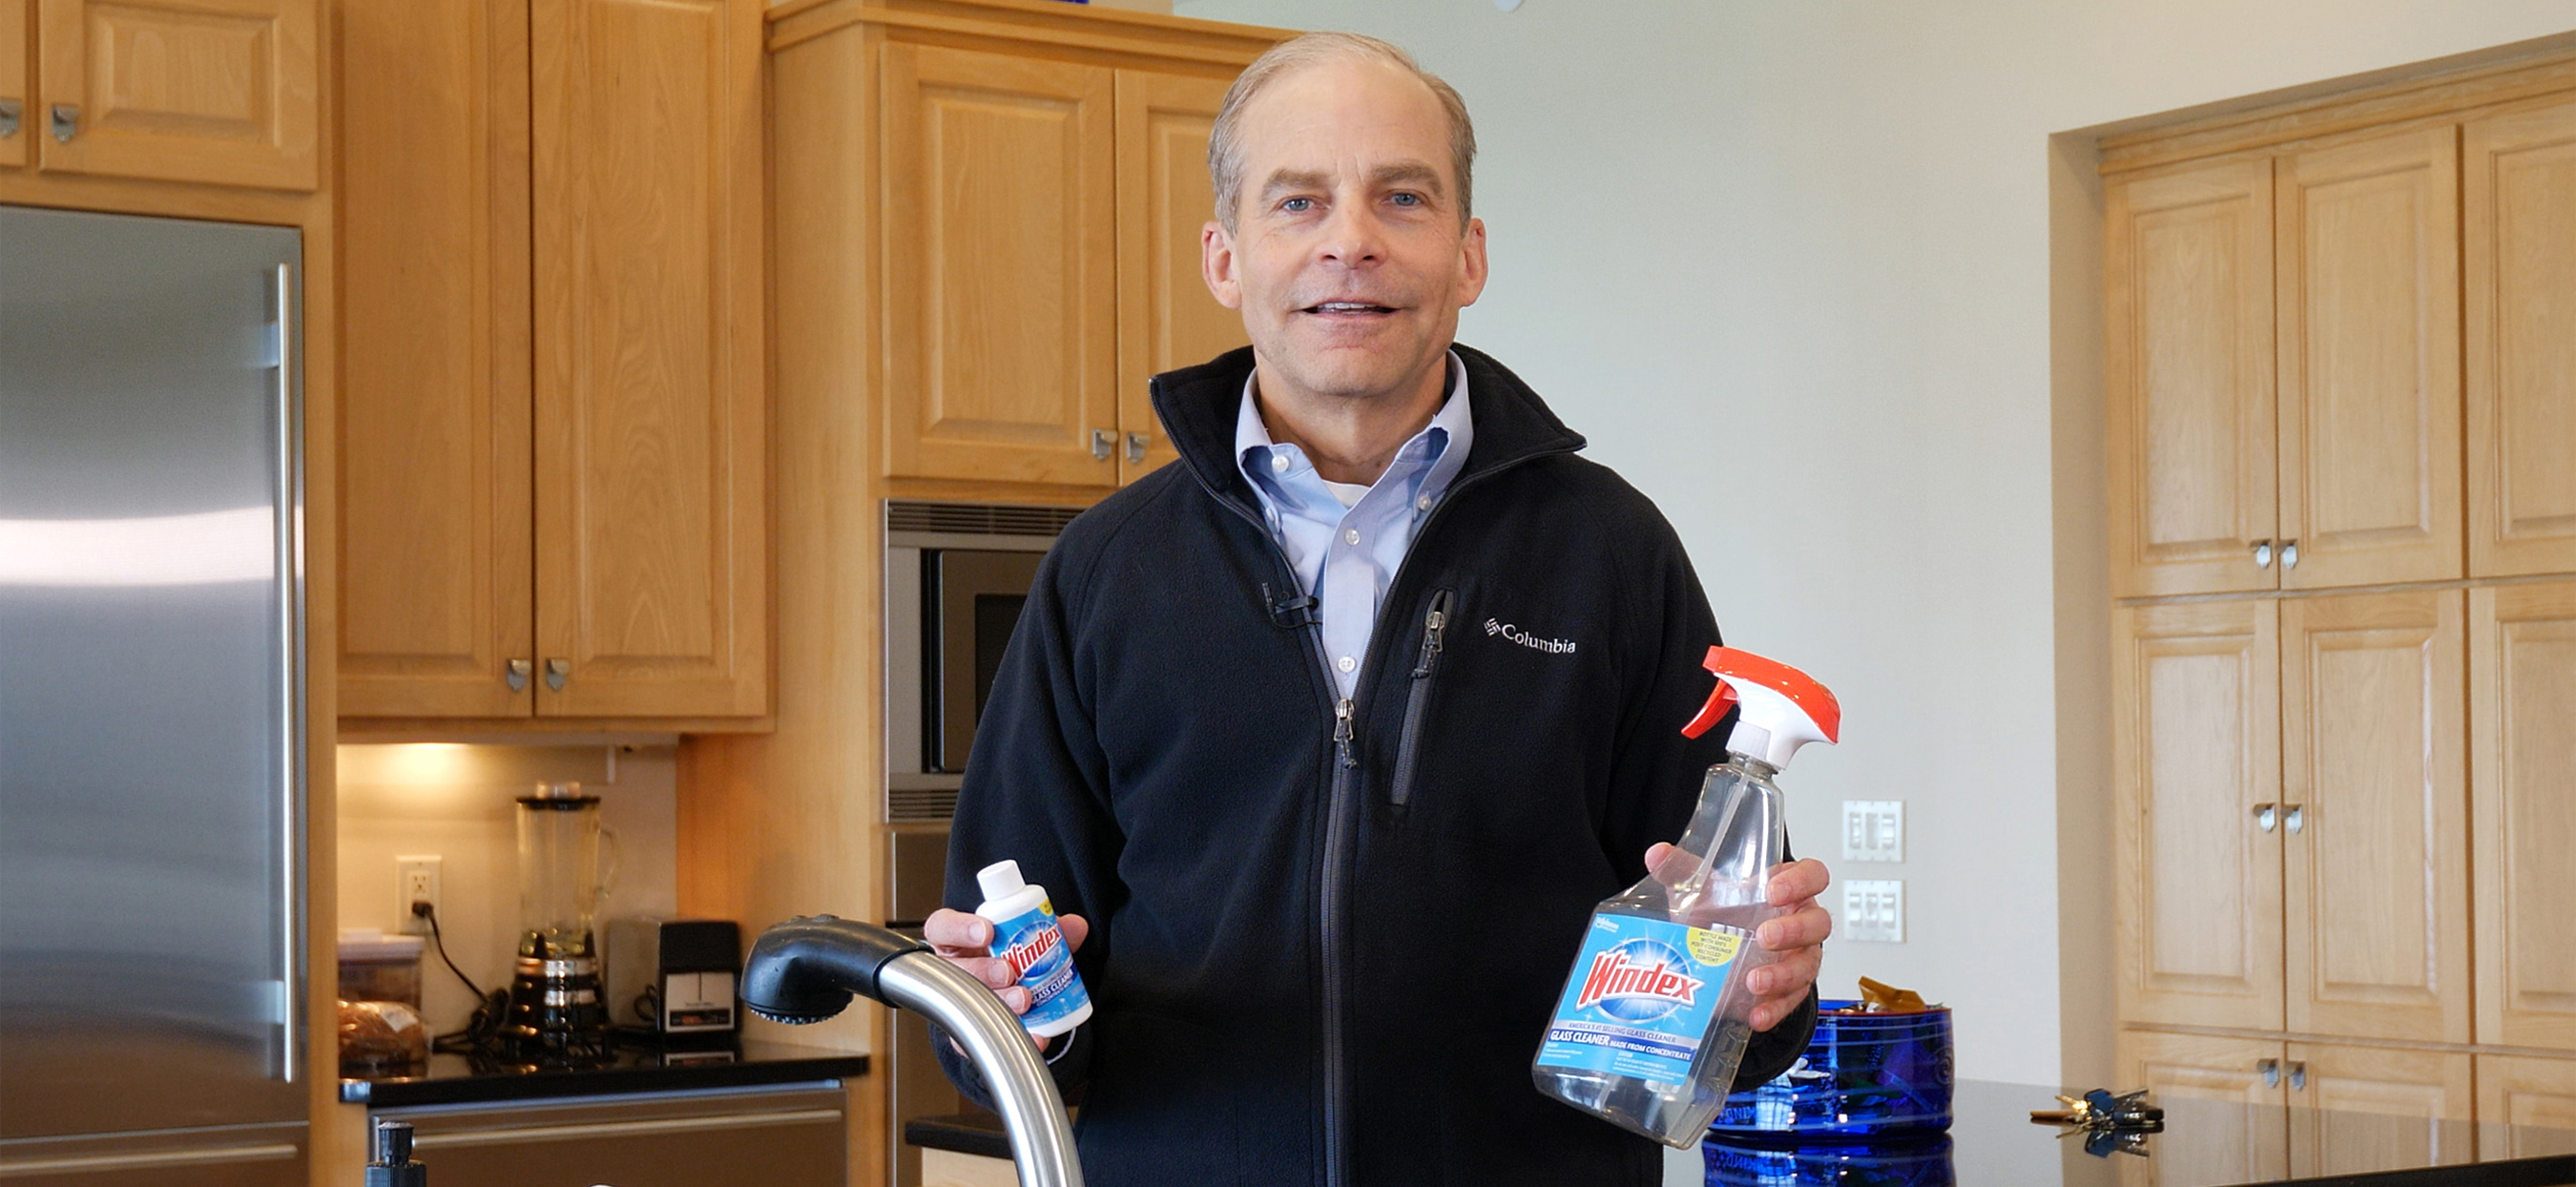 Fisk Johnson holding Windex bottles